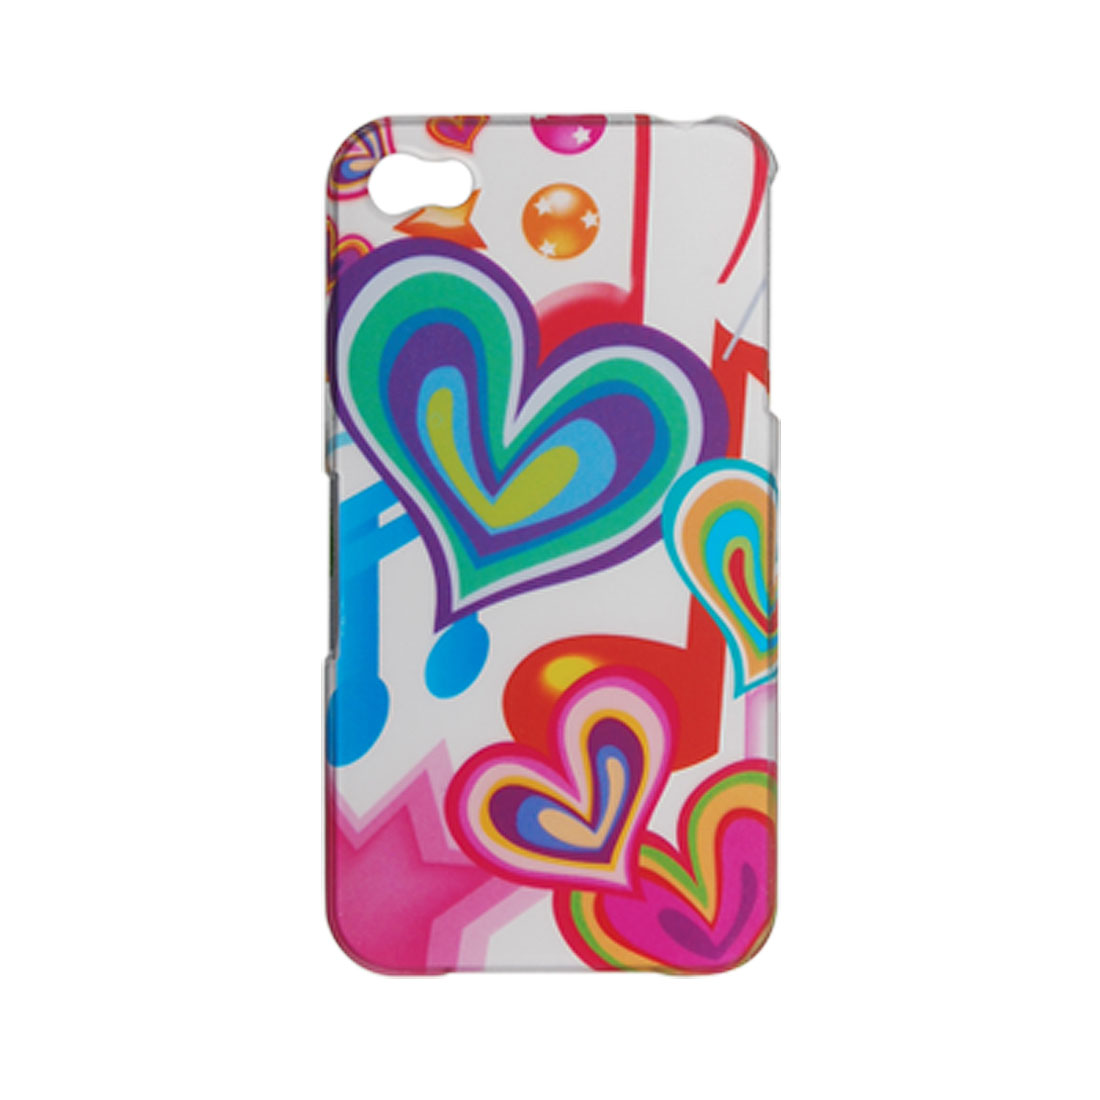 Rainbow Heart Print Rubberized Hard Plastic Case for iPhone 4 4G